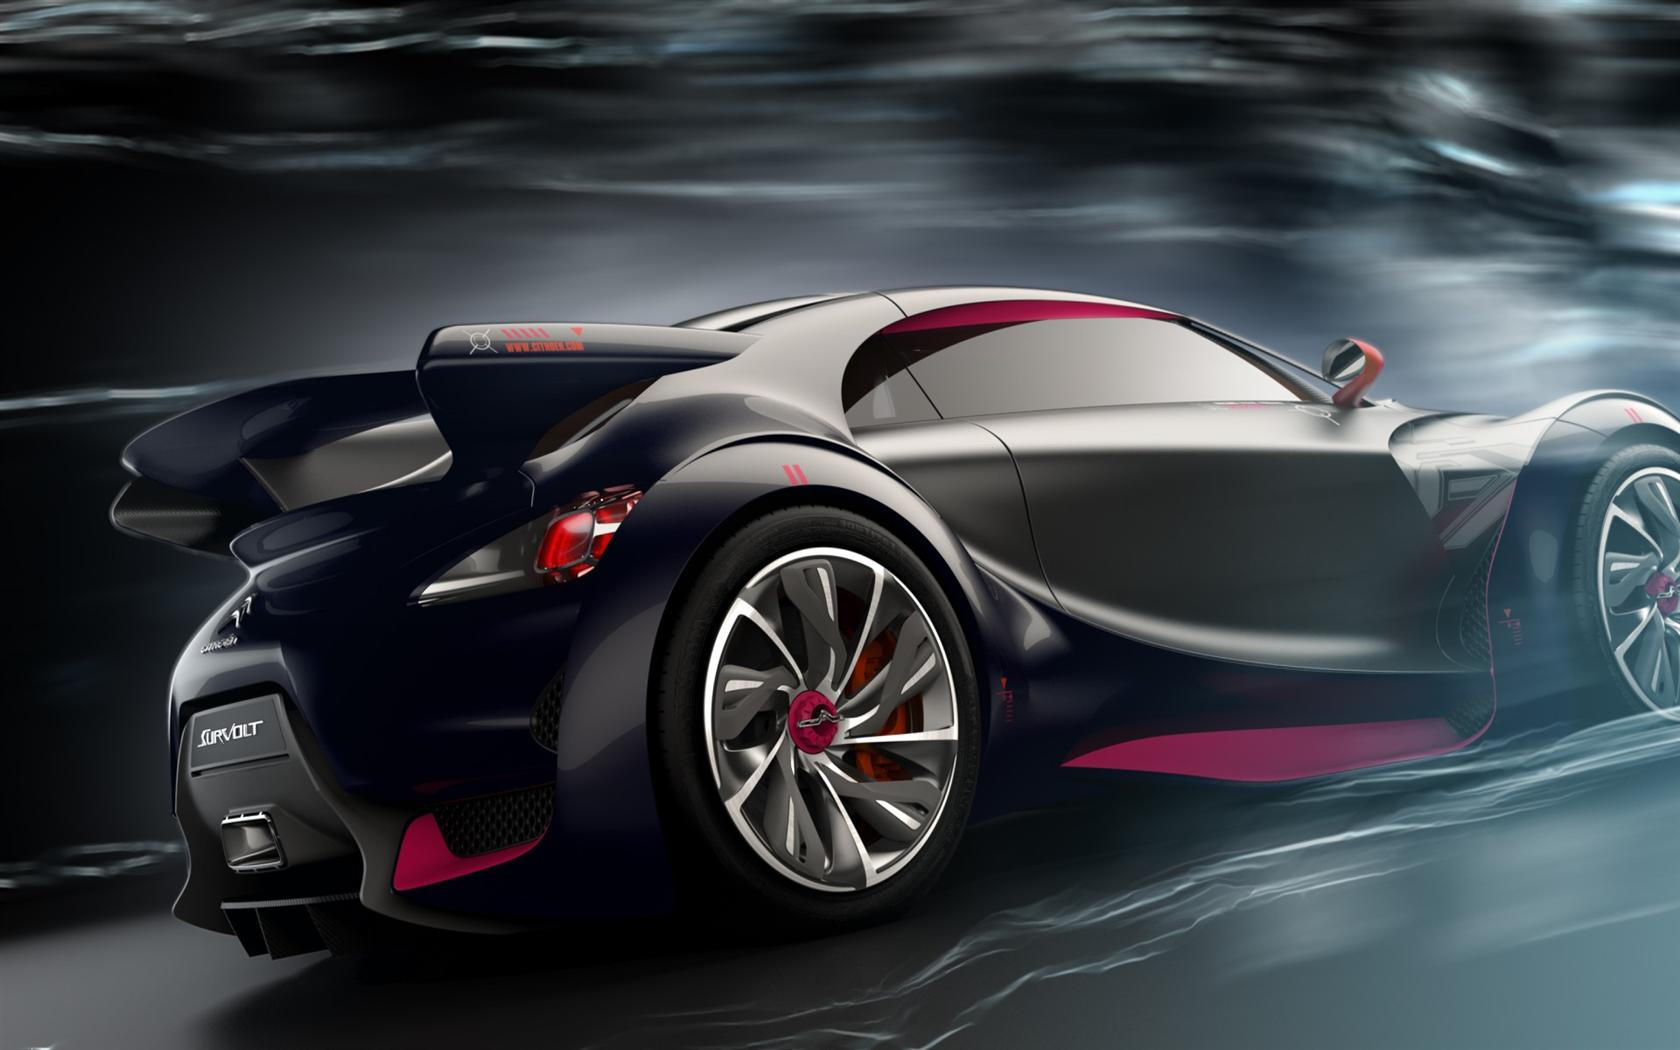 High Quality 2018 Citroen Survolt Concept Image Httpswww